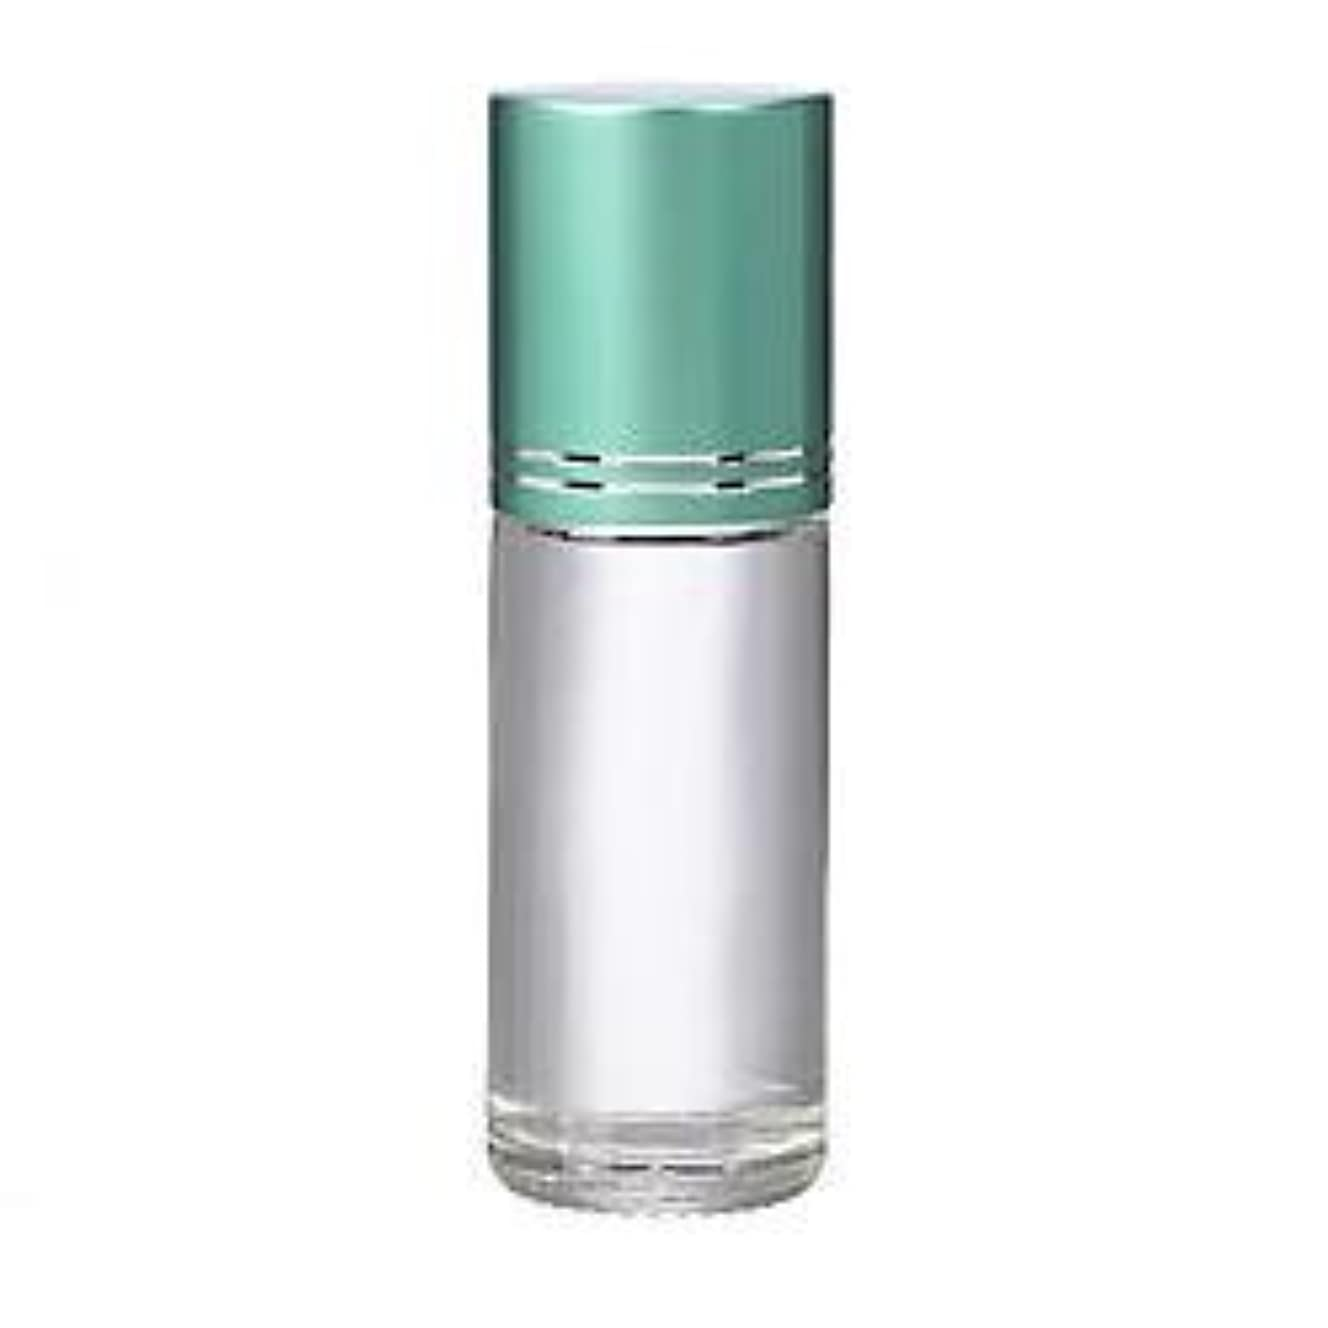 ストライク演じる抜粋4 Bottles Large 30ml Roll On Empty Glass Bottles for Essential Oils Refillable 1 Oz Glass Roller Ball Roll-On...